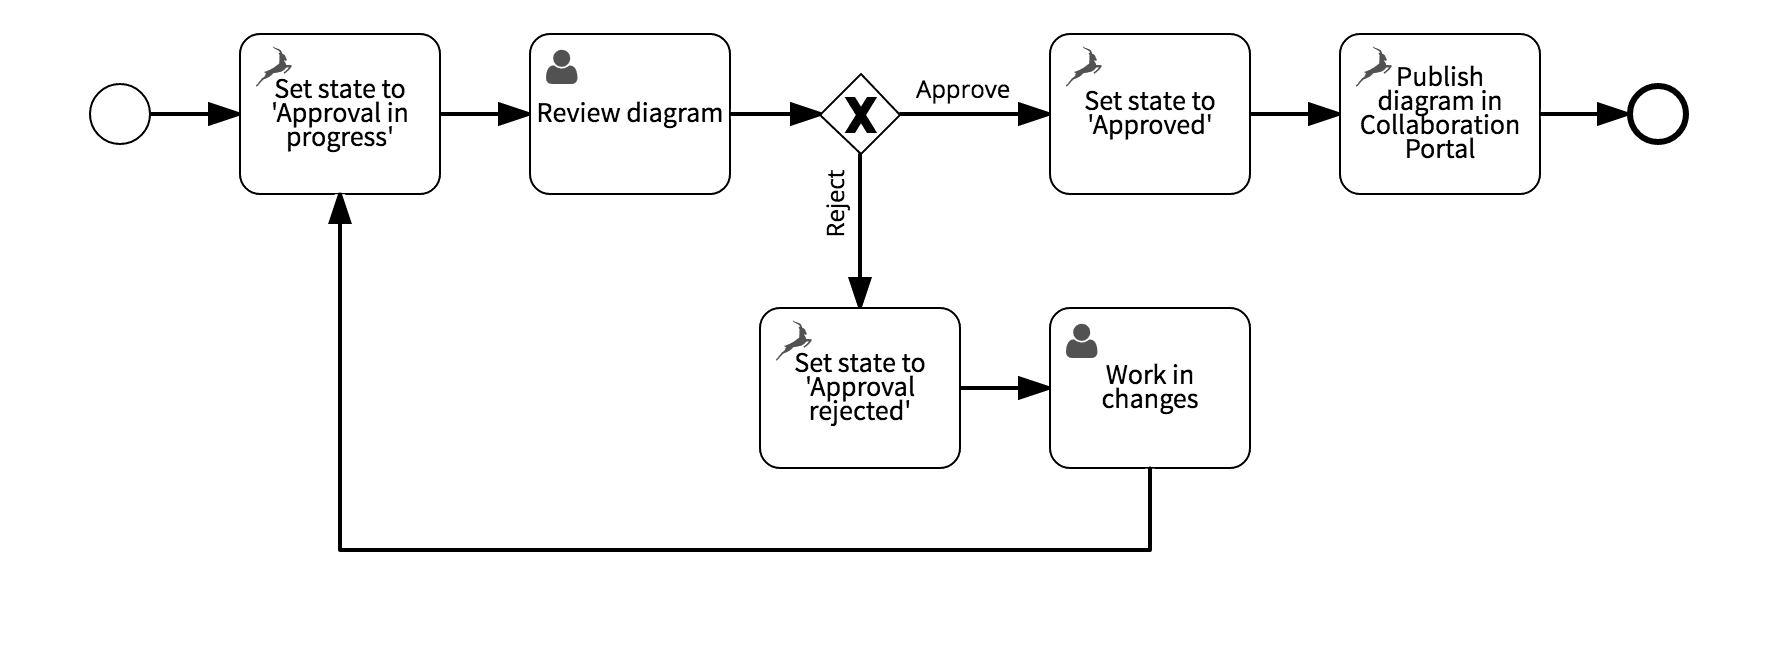 state approval diagram